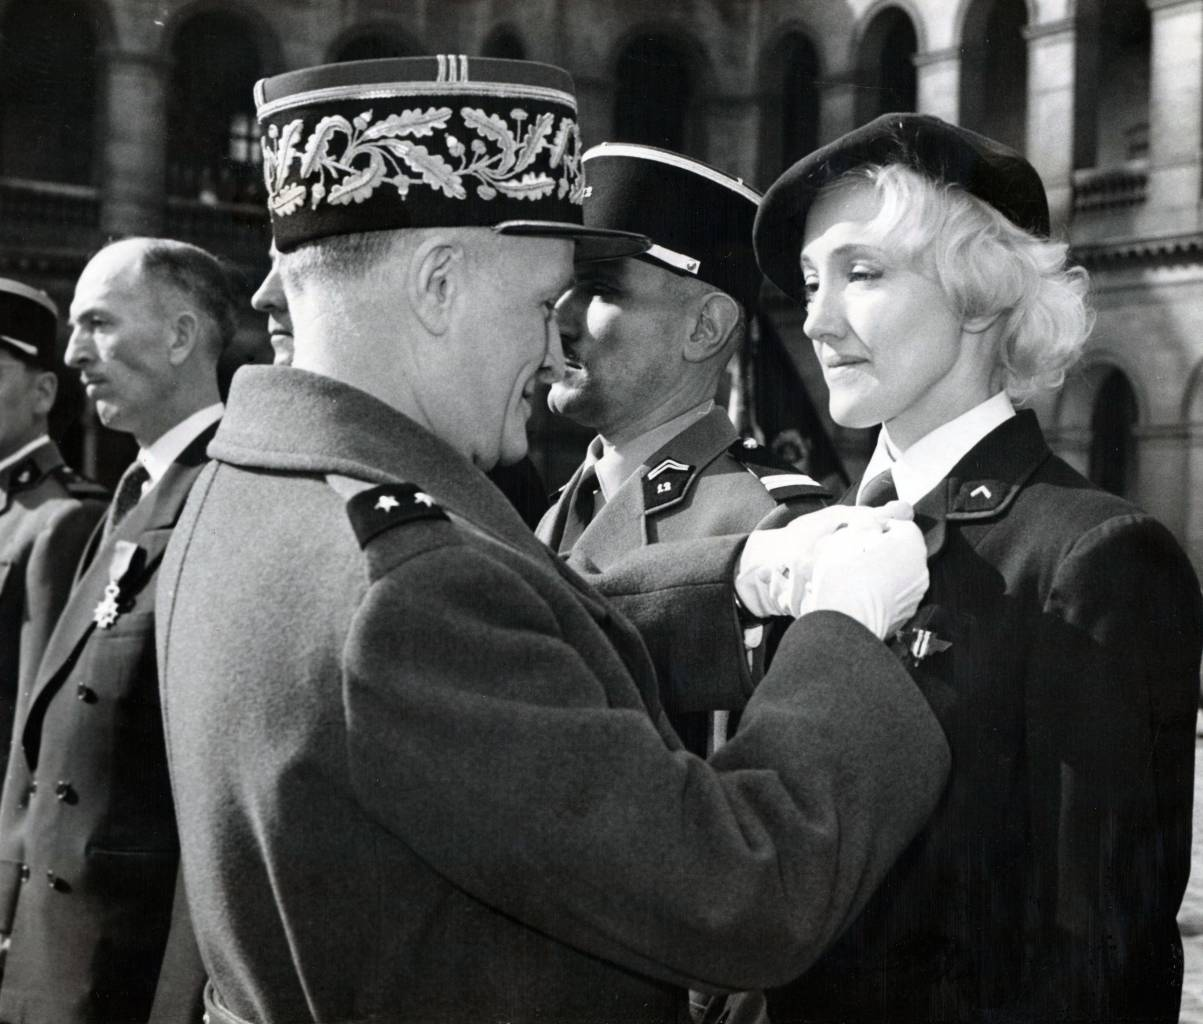 Mandatory Credit: Photo by KeystoneUSA-ZUMA/REX/Shutterstock (1380859e) Dancer Lydia Lova, former member of the French Resistance, receives her Legion of Honor from General Henri Masson during a ceremony held at the Invalides, Paris, France Various